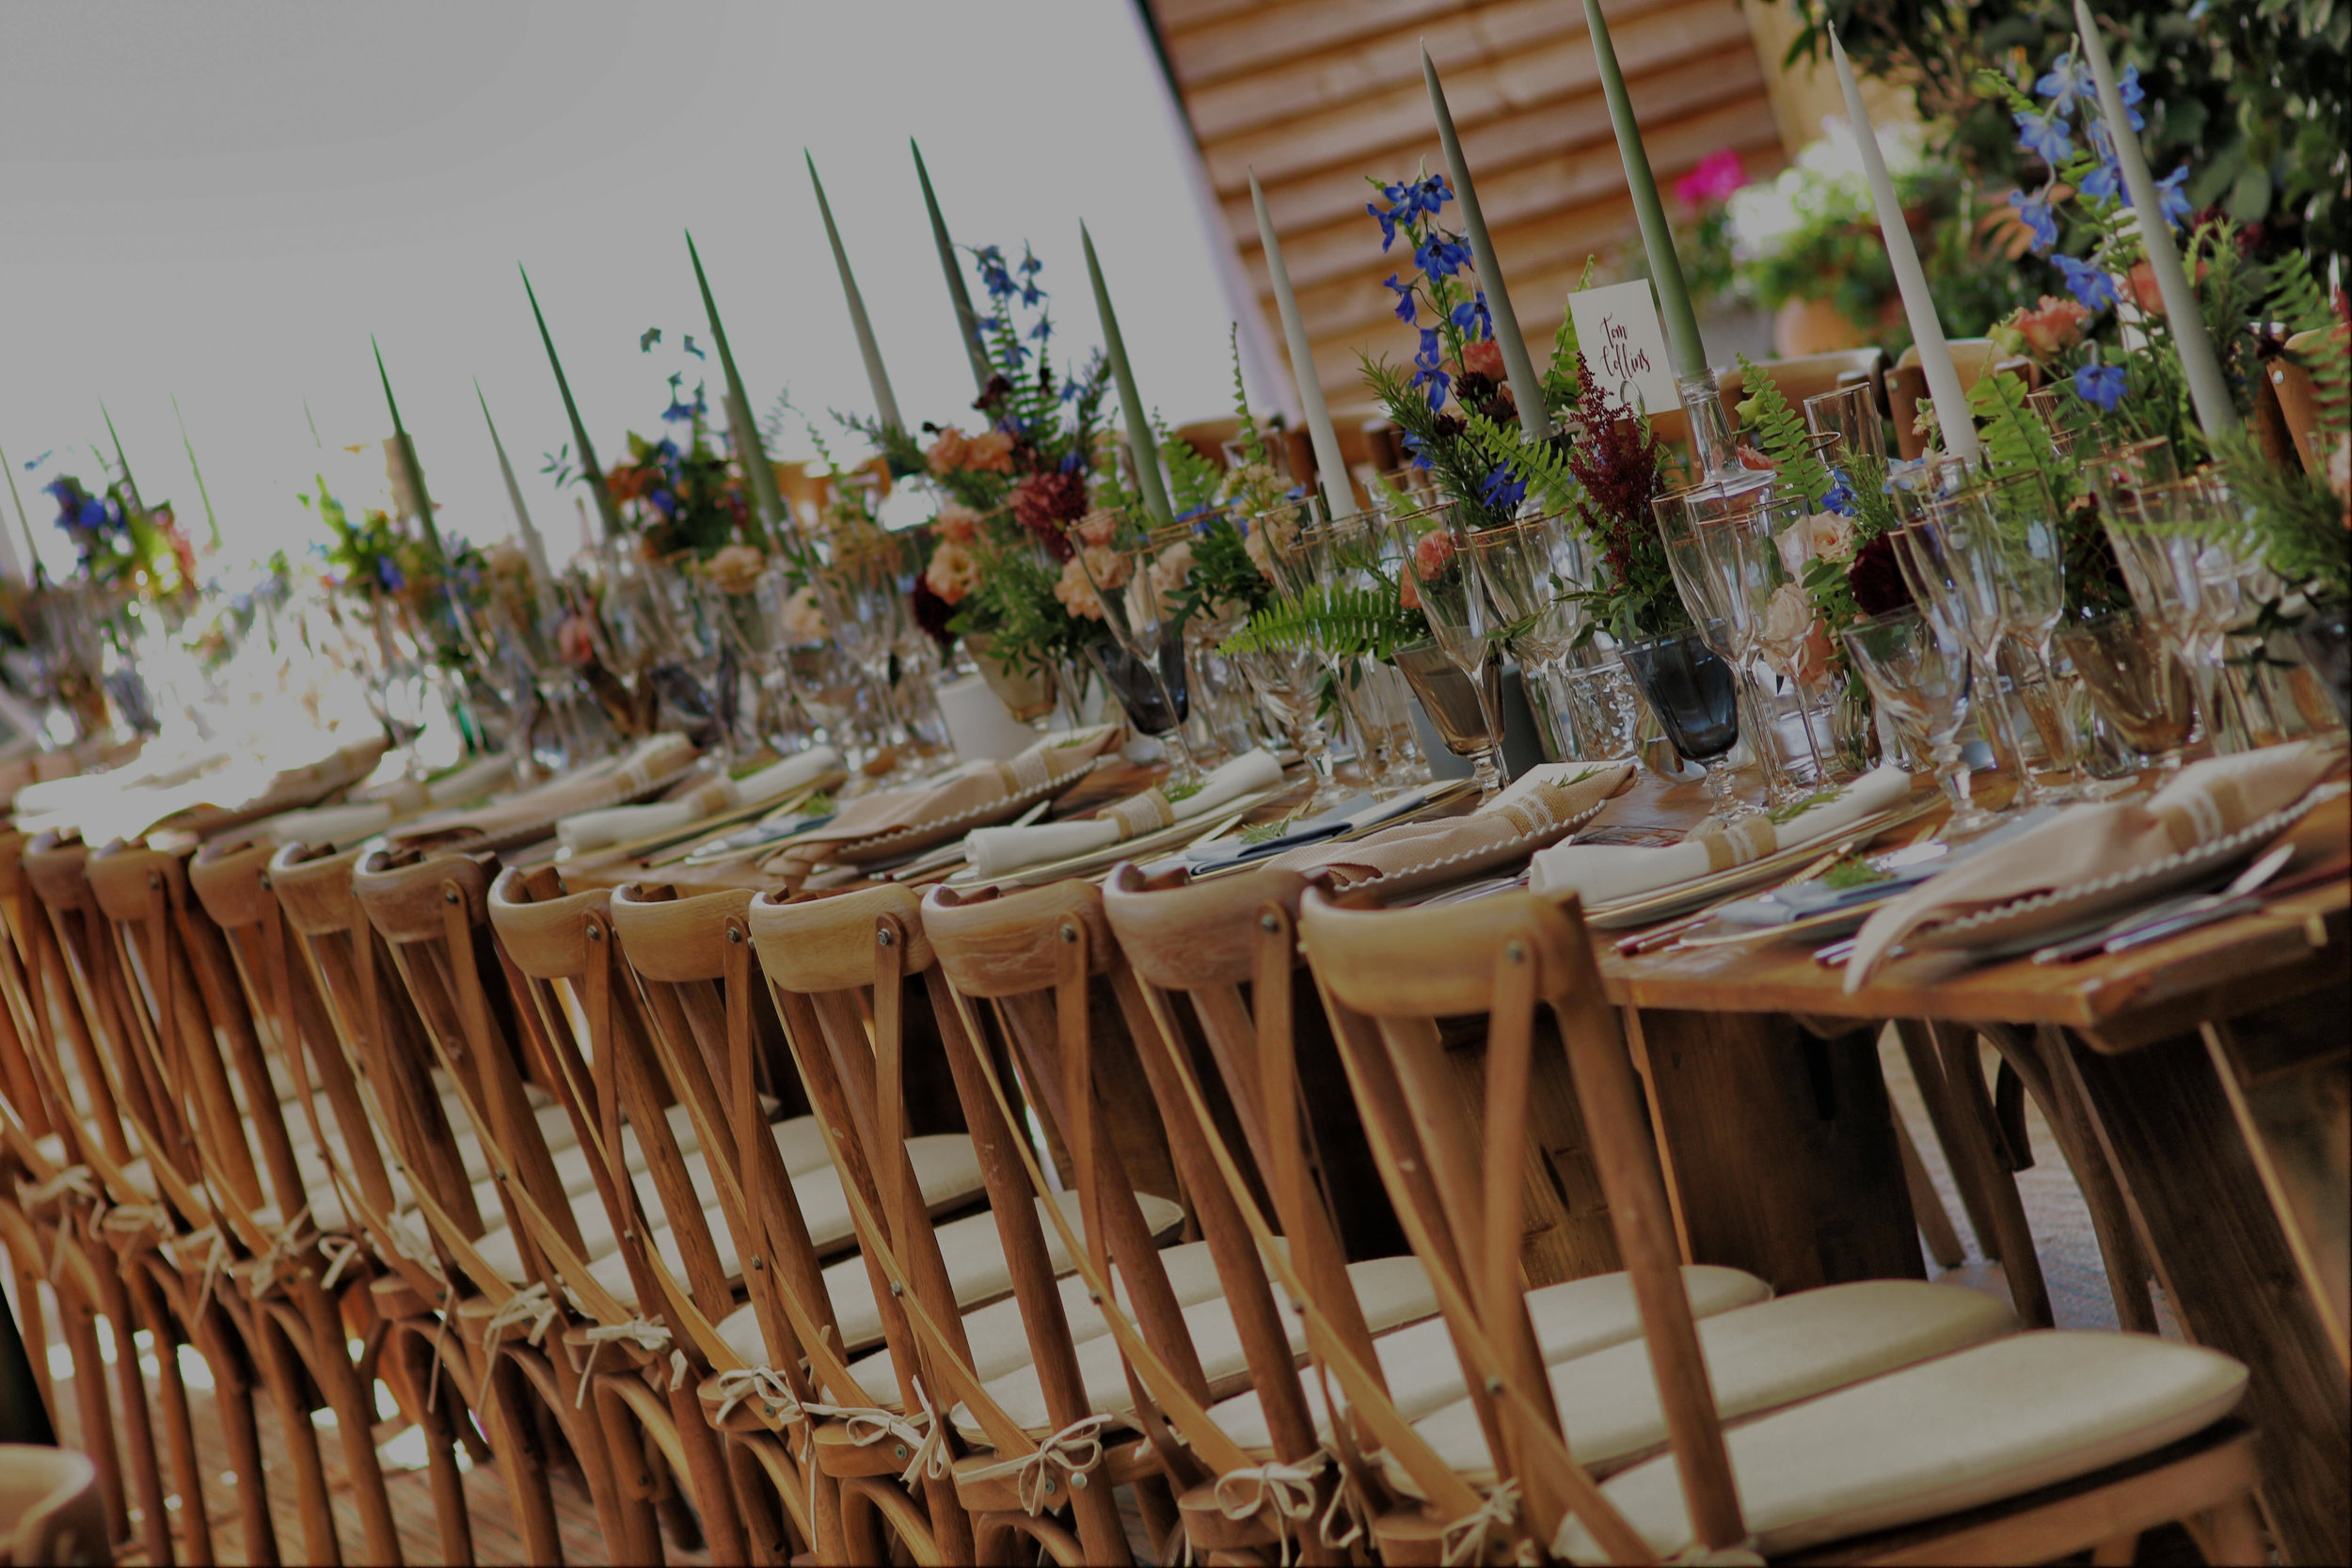 Event Venue Rental - Whether a private dining event for 20, a kid's birthday party for 12 or a corporate gathering for 60 we are ready to dazzle you. Creativity, passion, professionalism – we deliver your turn-key event by managing all aspects of the experience thereby saving you time, energy and money.